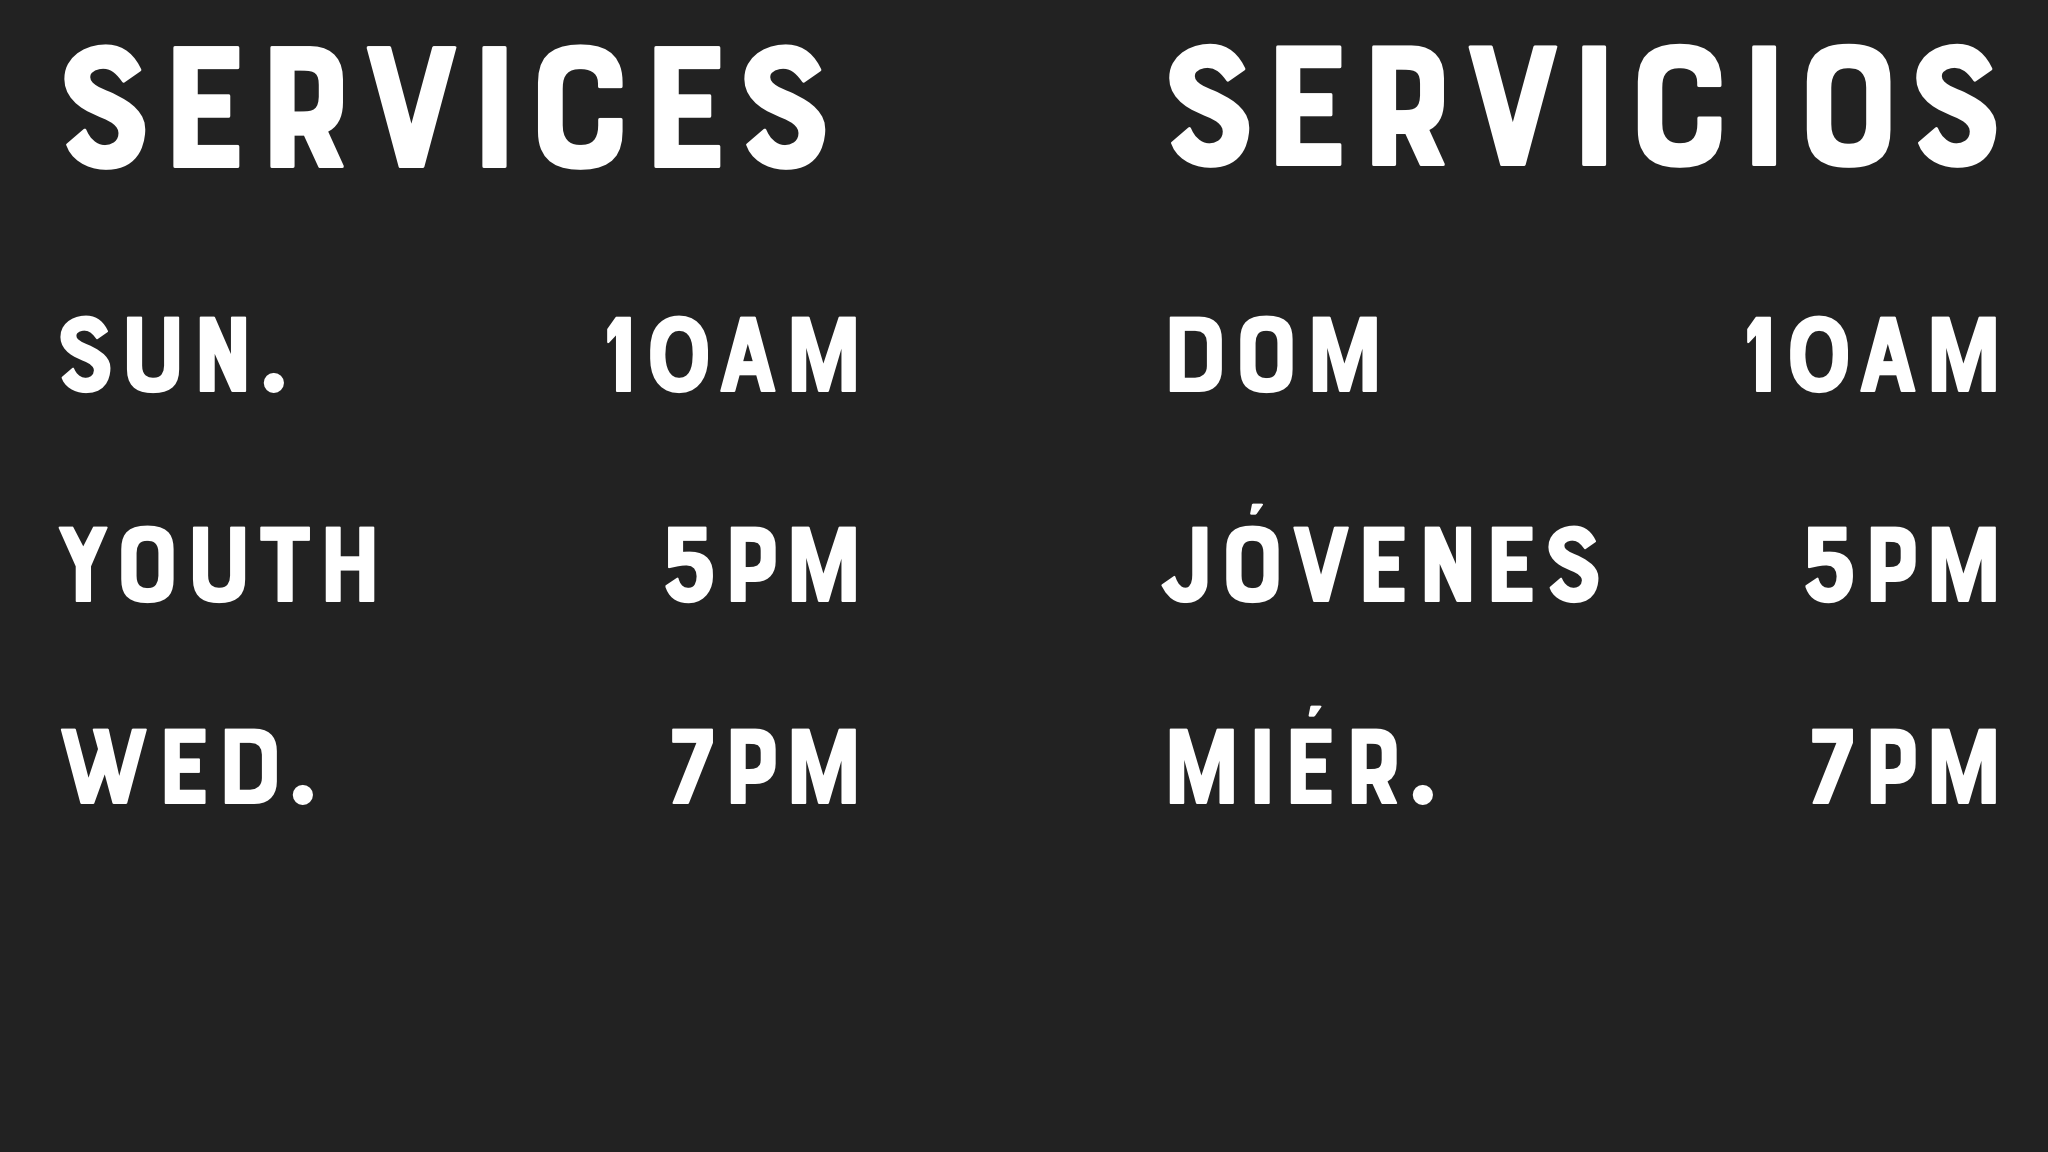 Our services, here at La Voz de Dios CC. Come and worship with us!